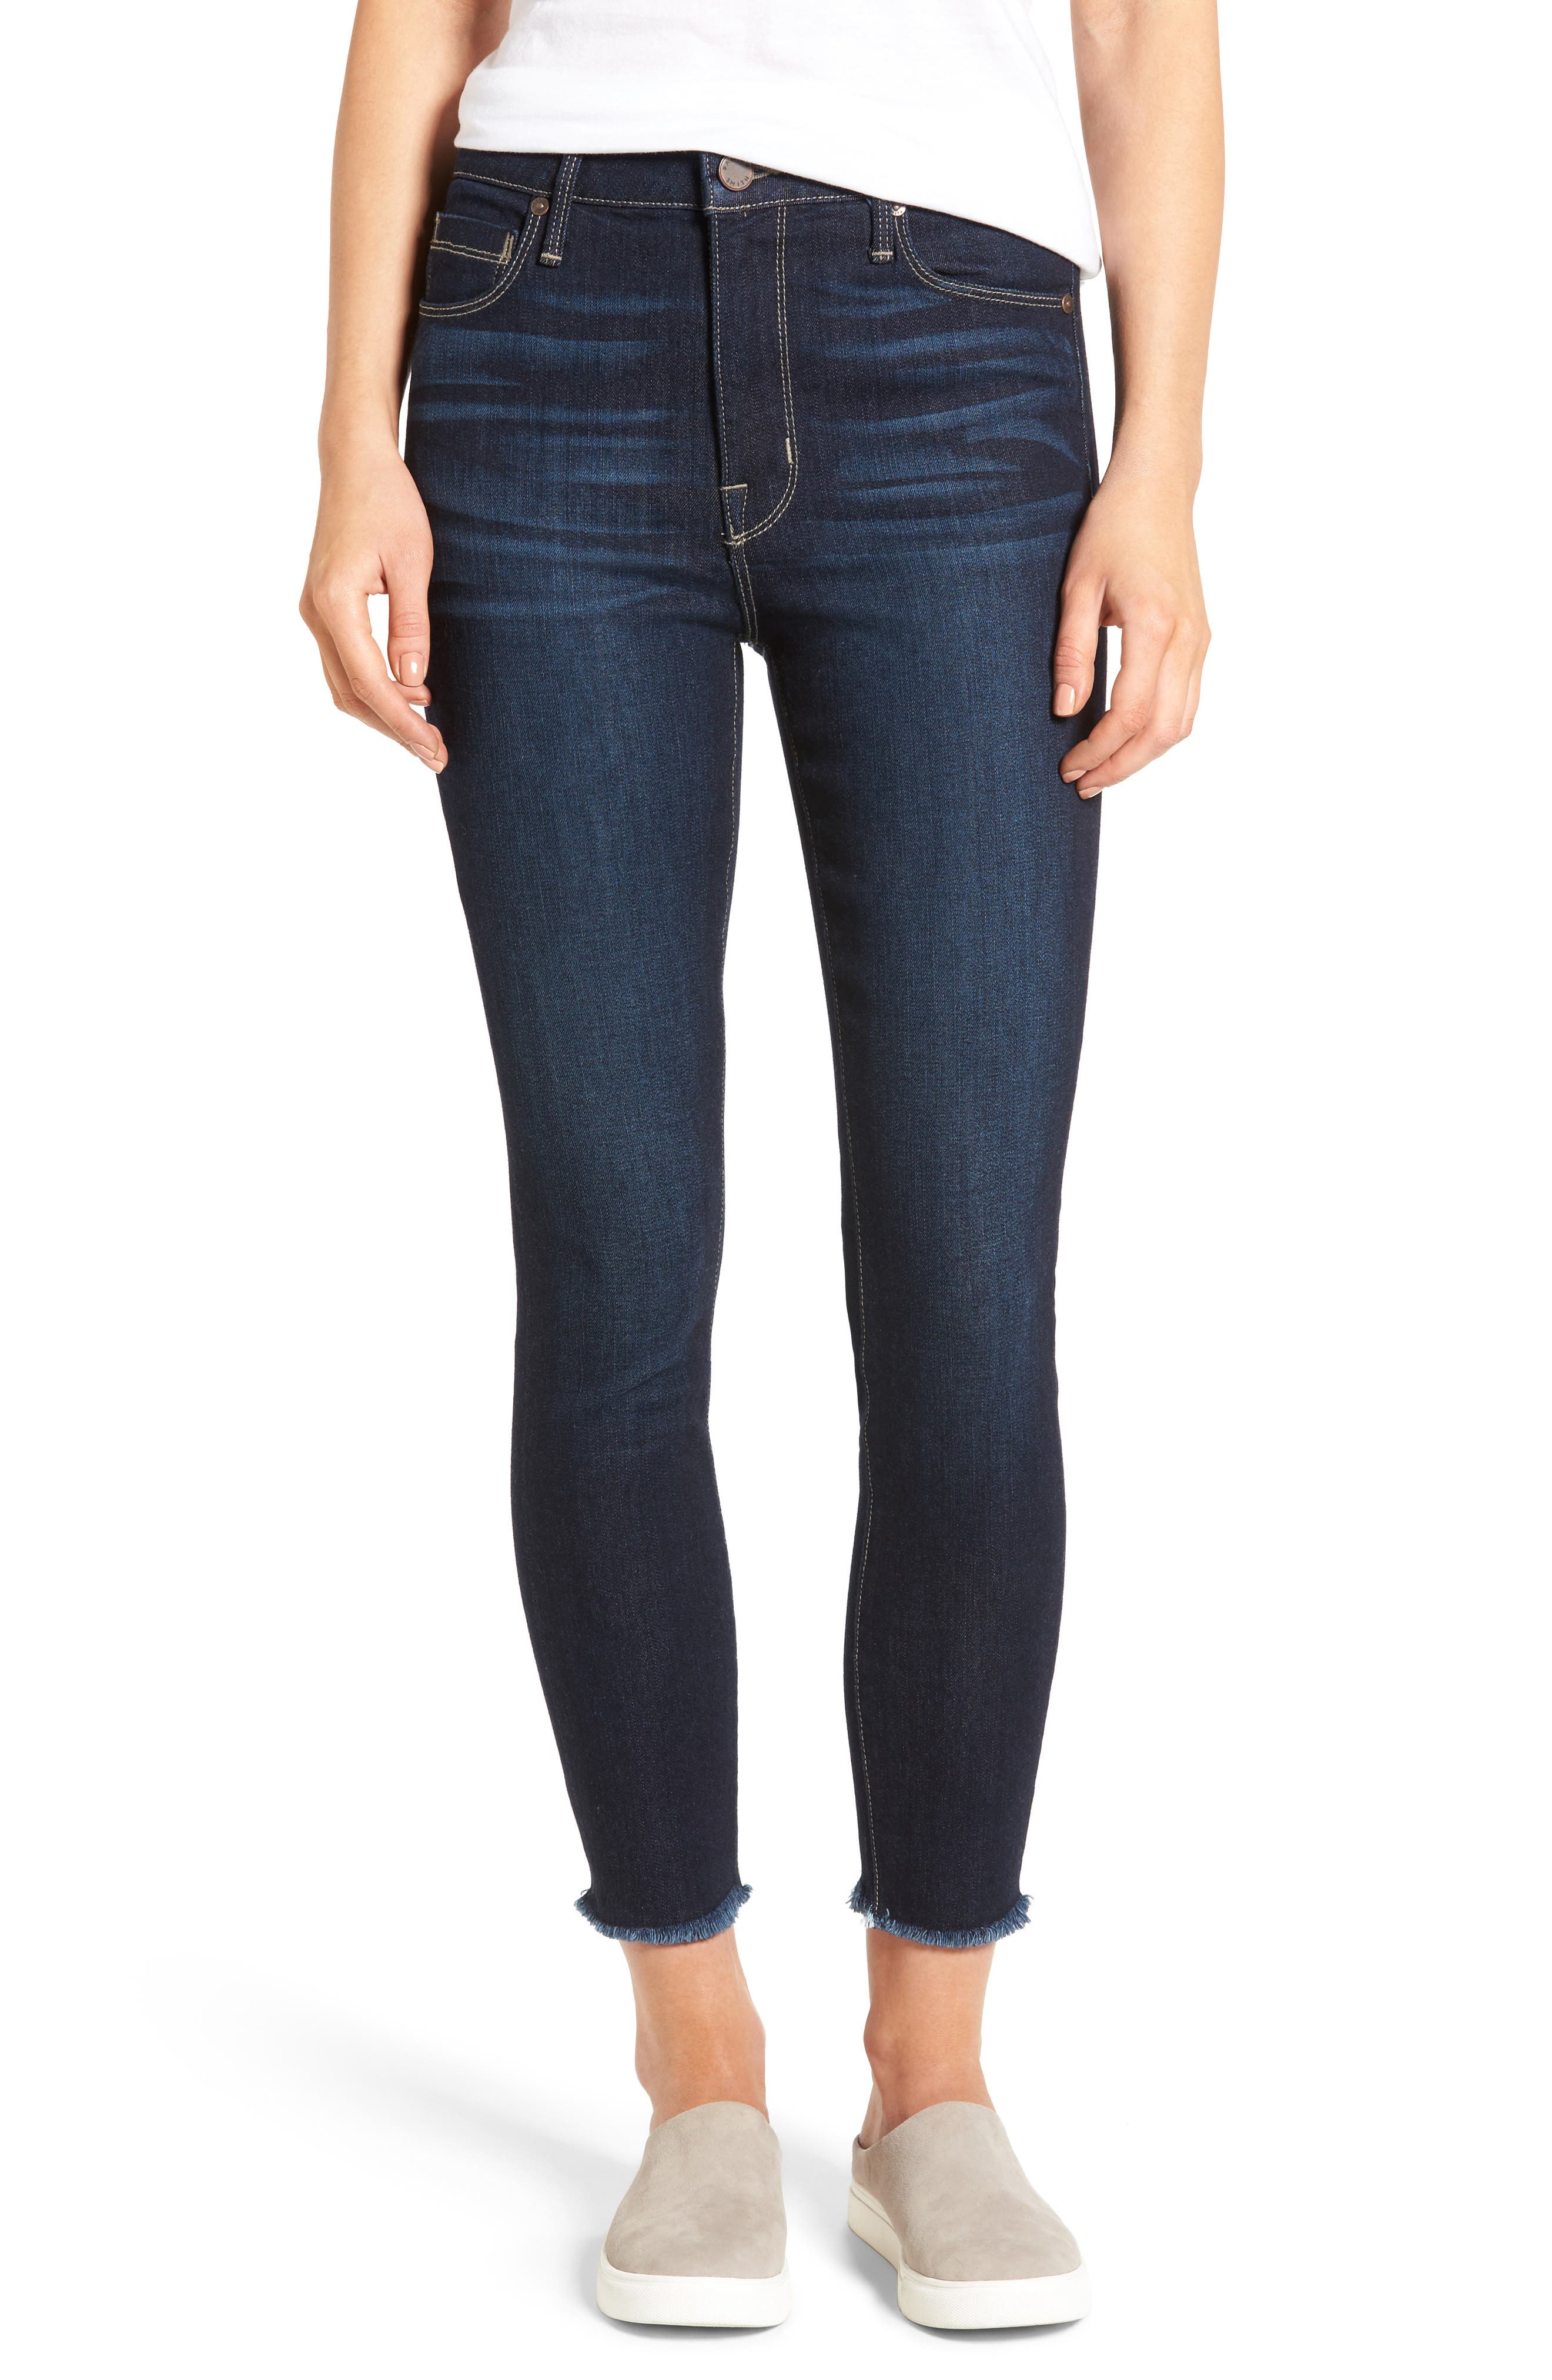 Alternate Image 1 Selected - PARKER SMITH Bombshell Raw Hem Stretch Skinny Jeans (Horizon)